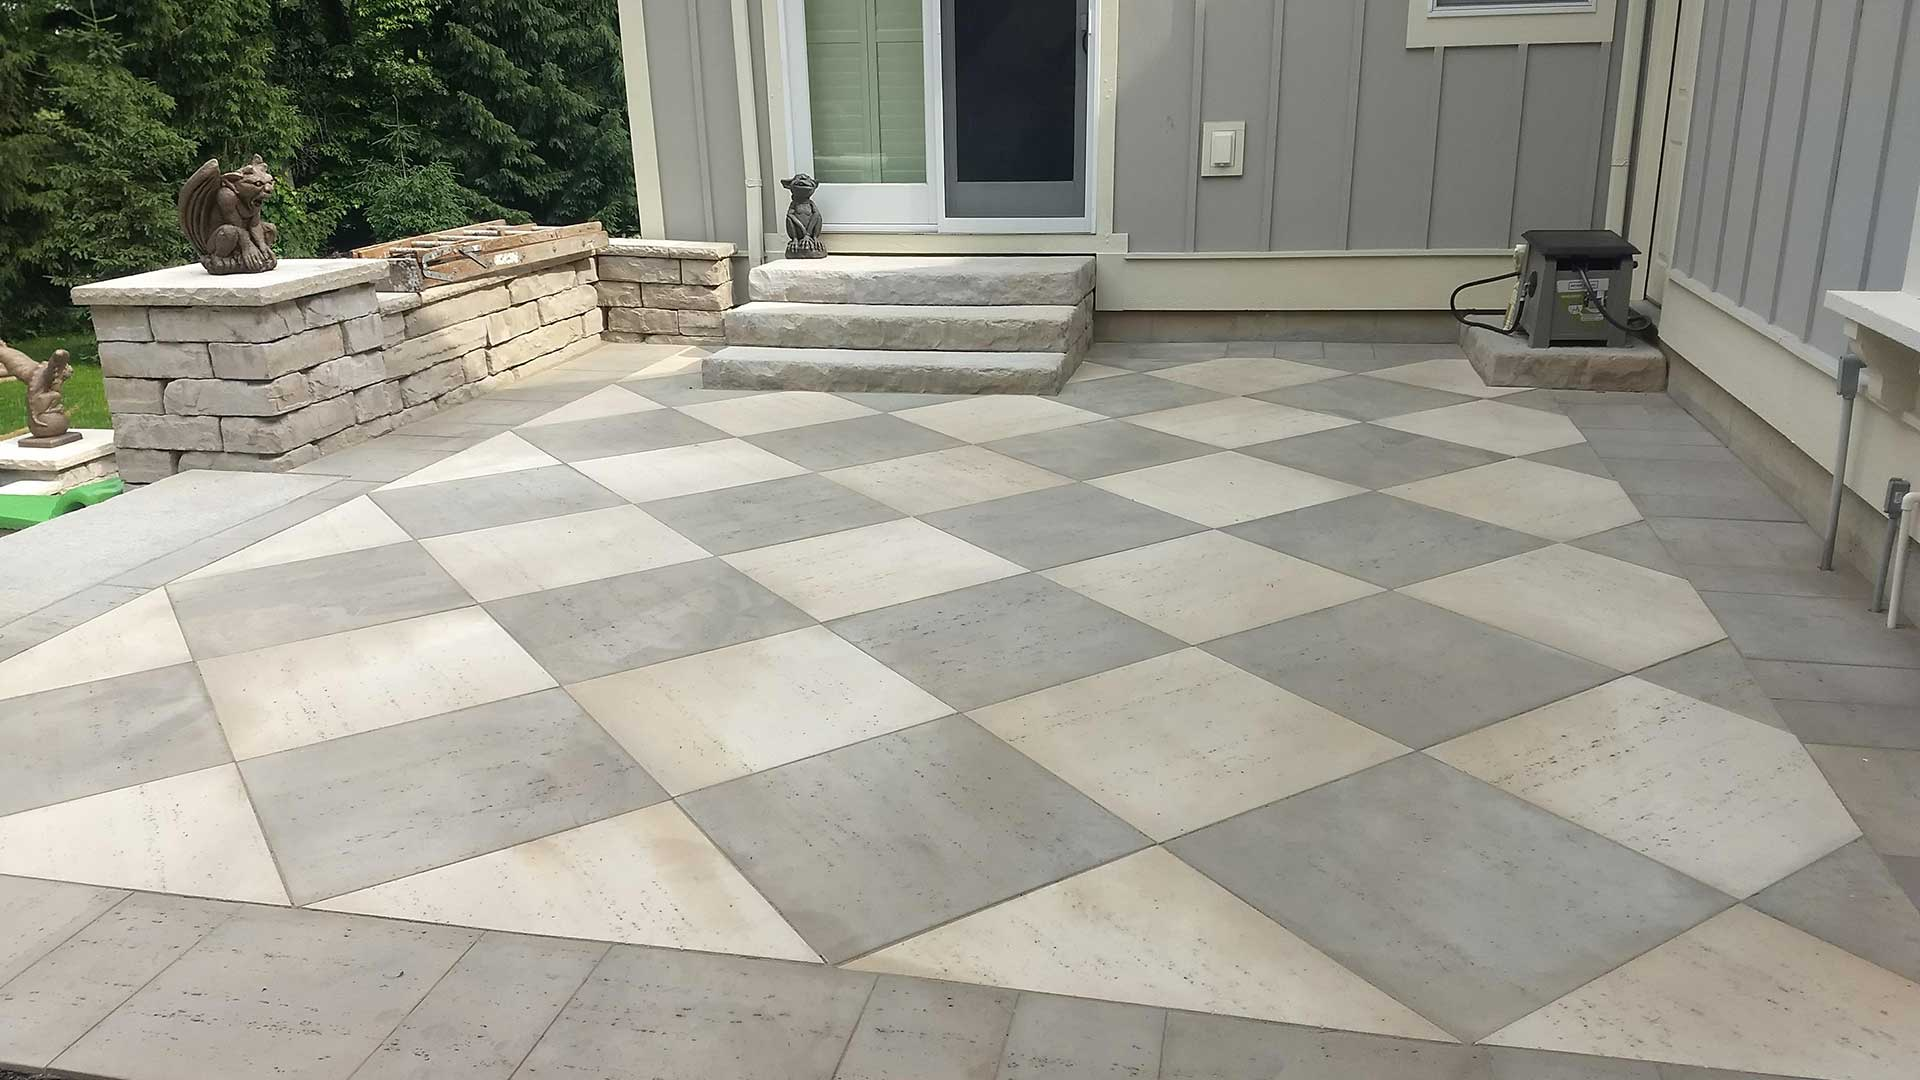 Checkered pattern patio construction in Grandville, MI.